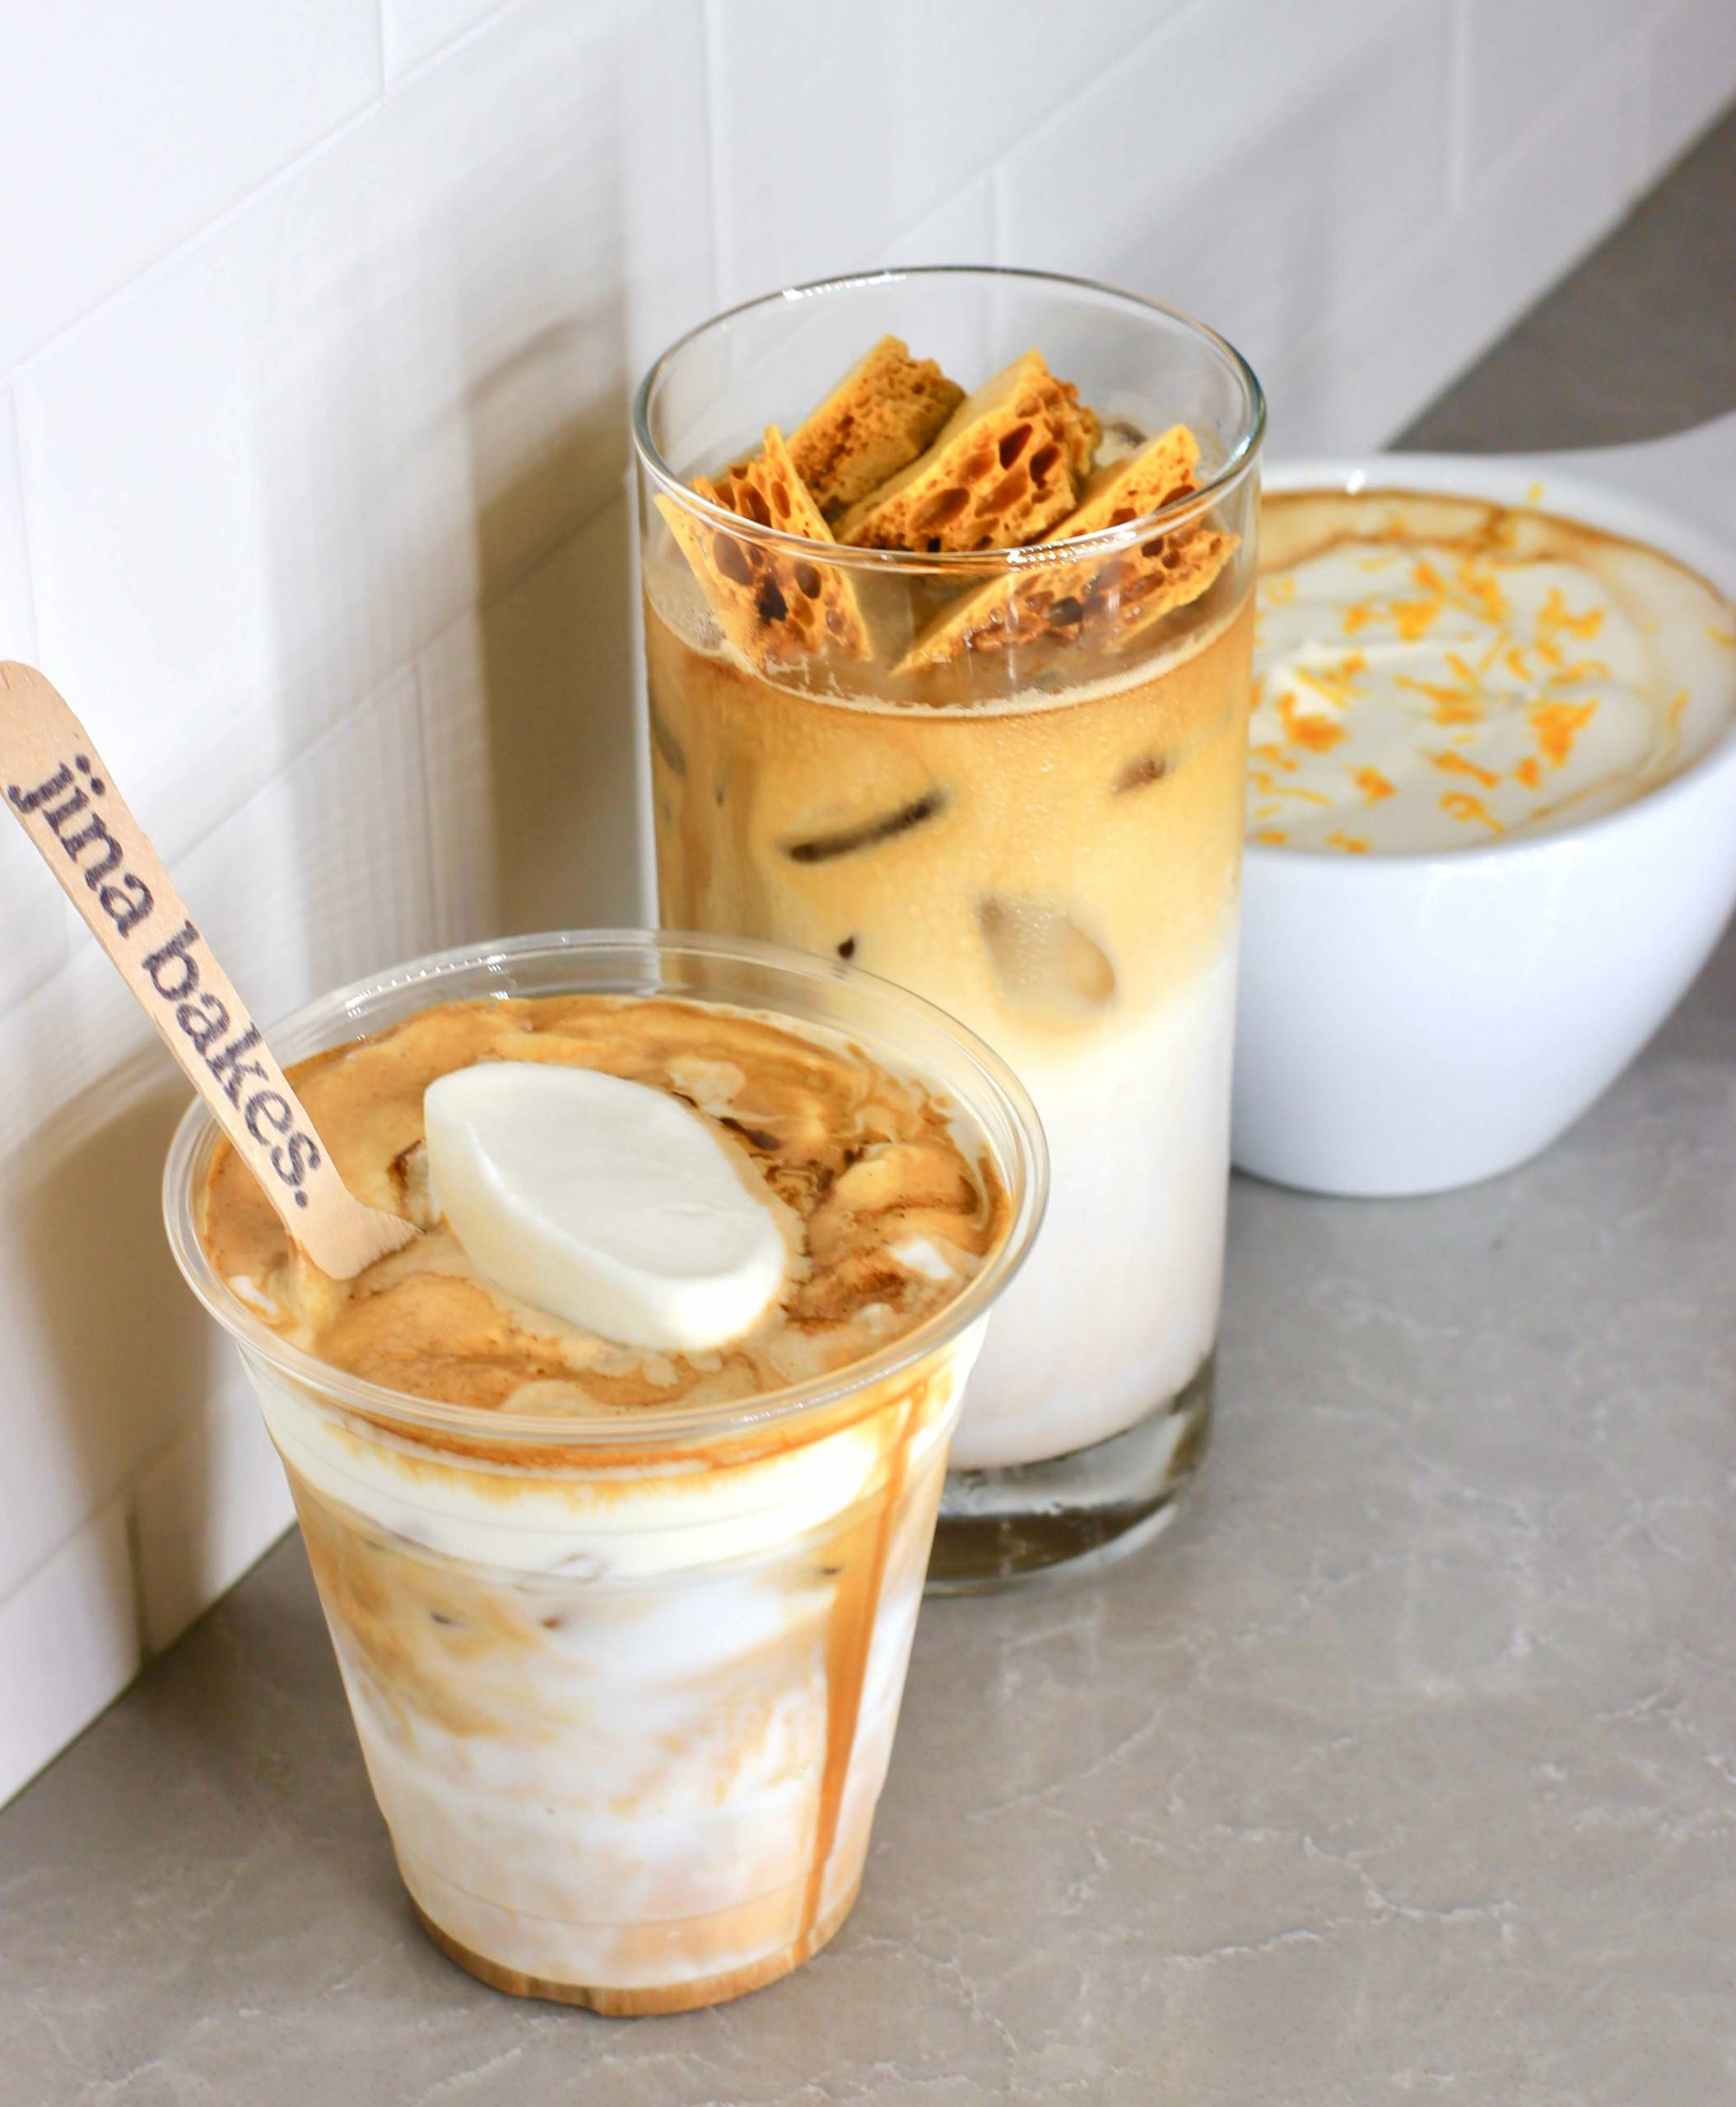 Three coffee drinks on a countertop, variously topped with whipped cream and honeycomb toffee candy.